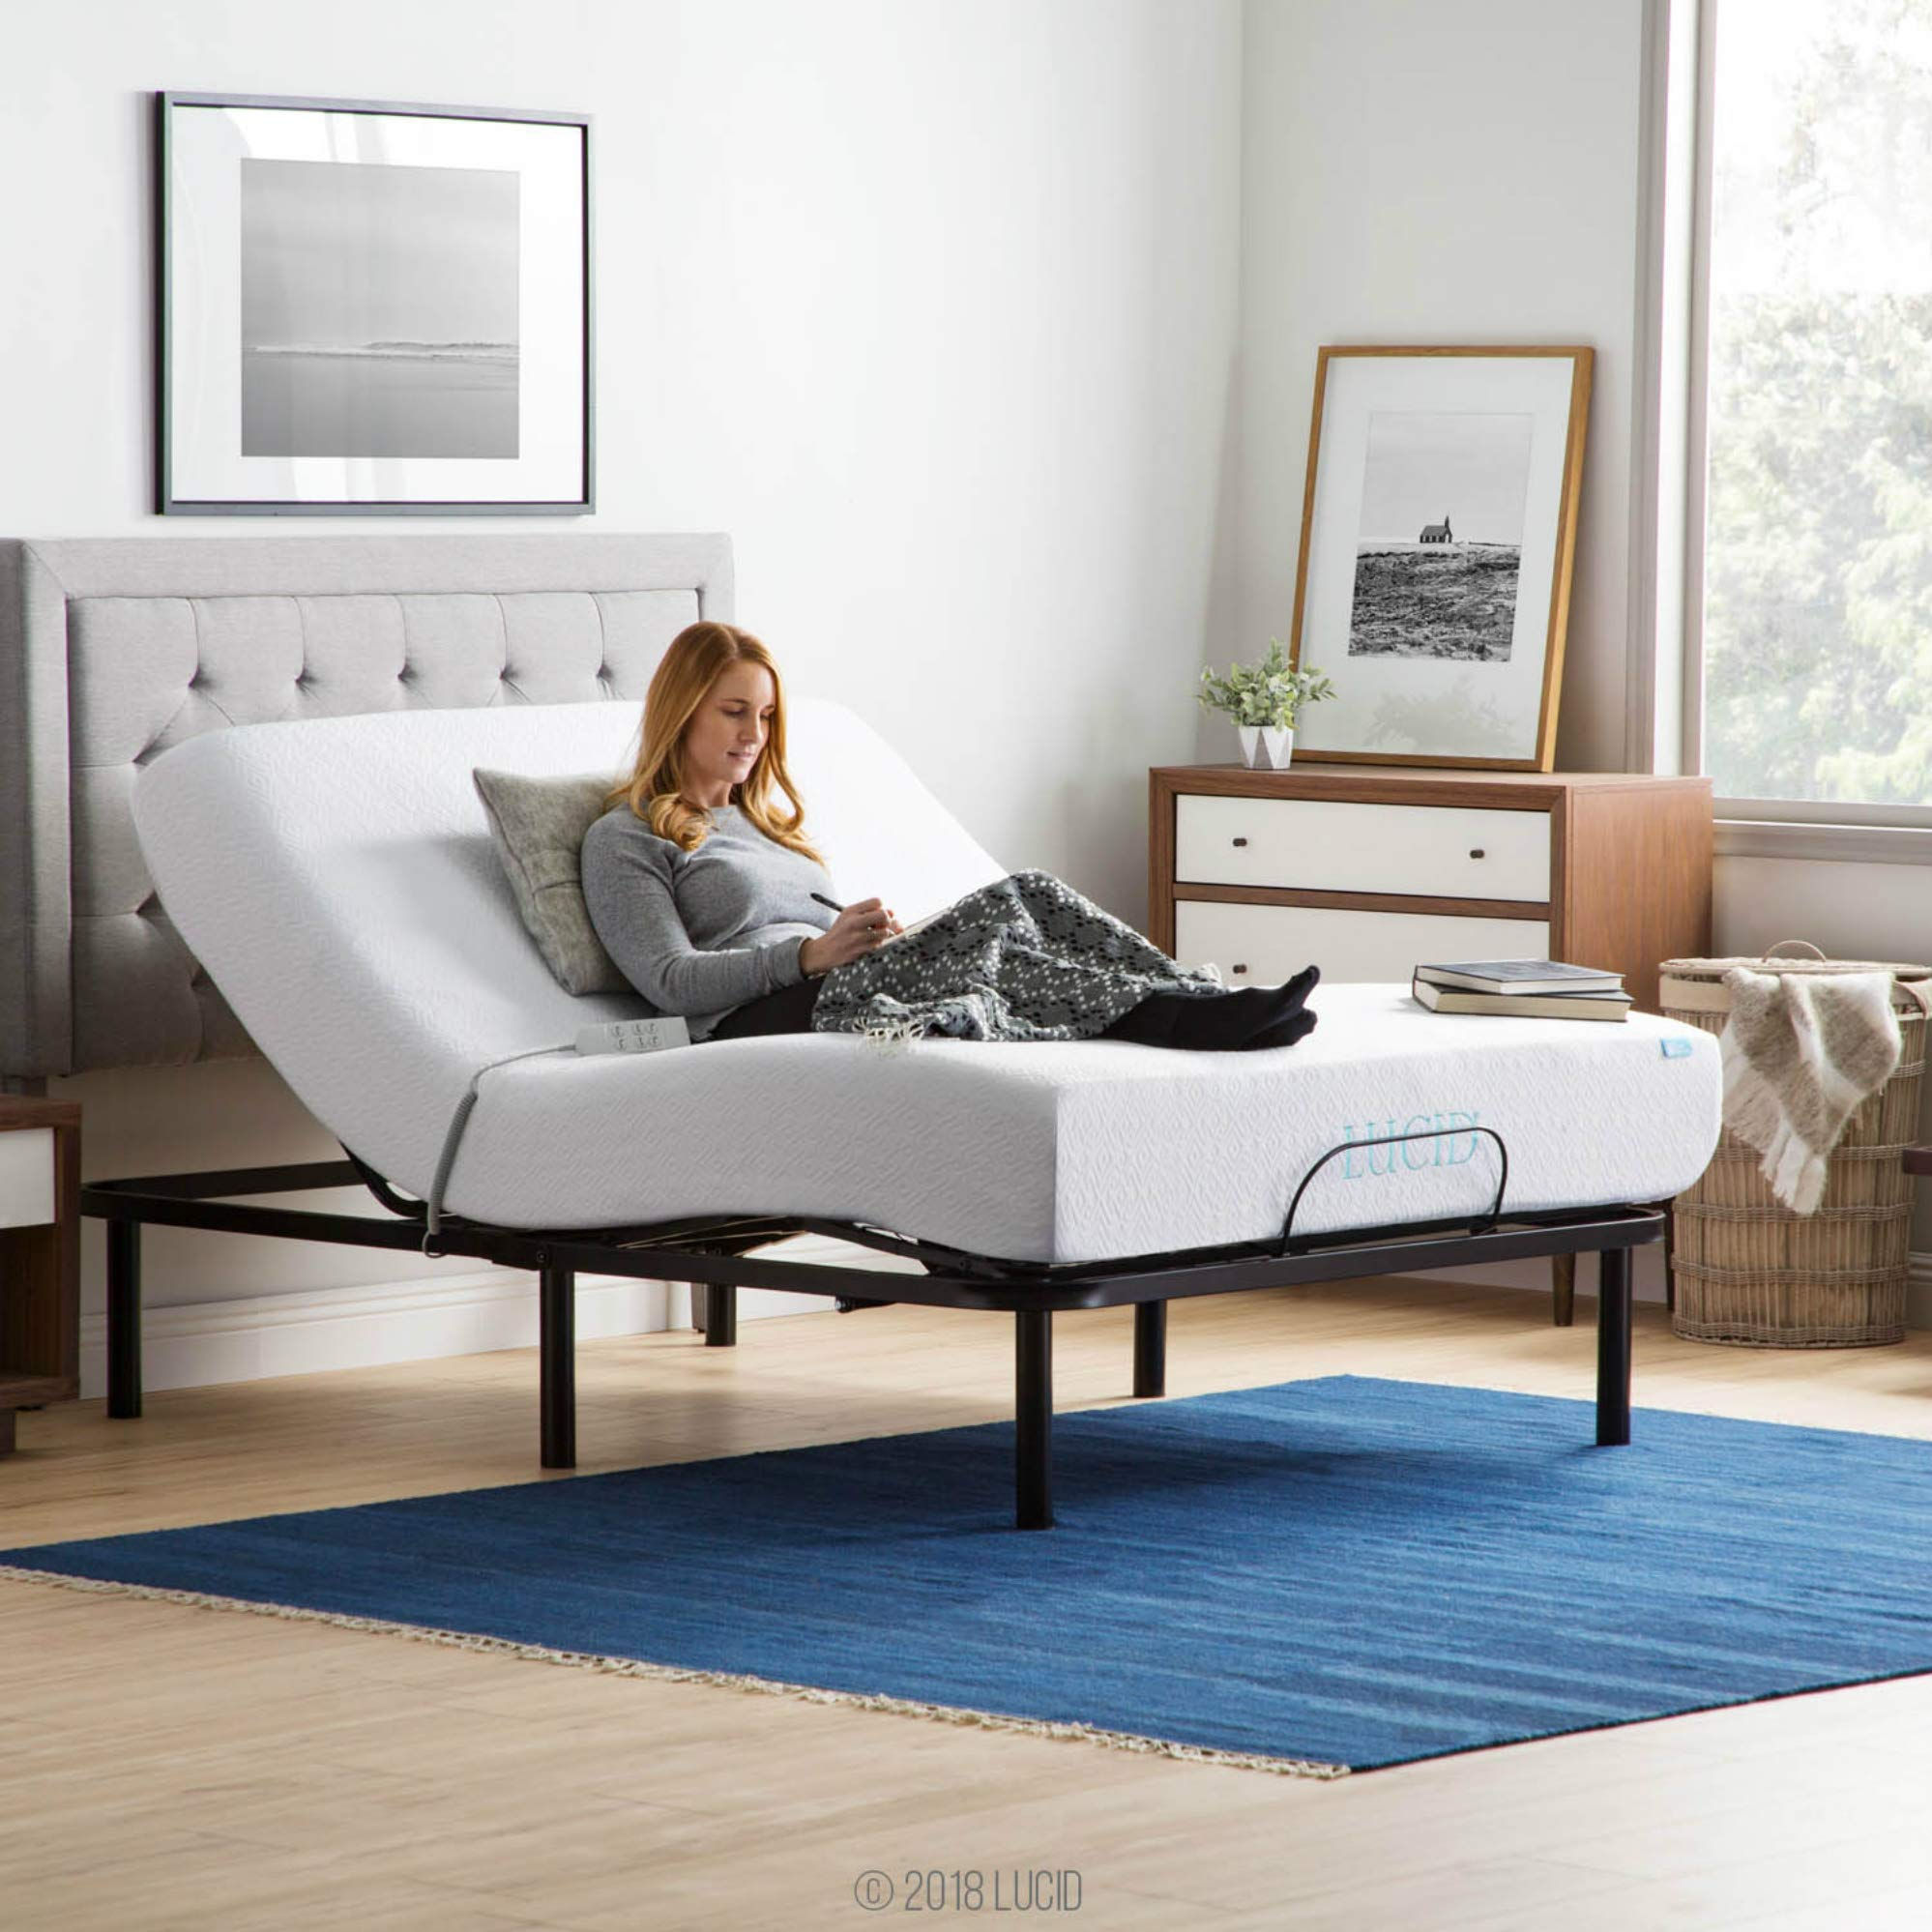 LUCID L100 Adjustable Bed Base Steel Frame - 5 Minute Assembly - Head and Foot Incline - Wired Remote Control - Queen by LUCID